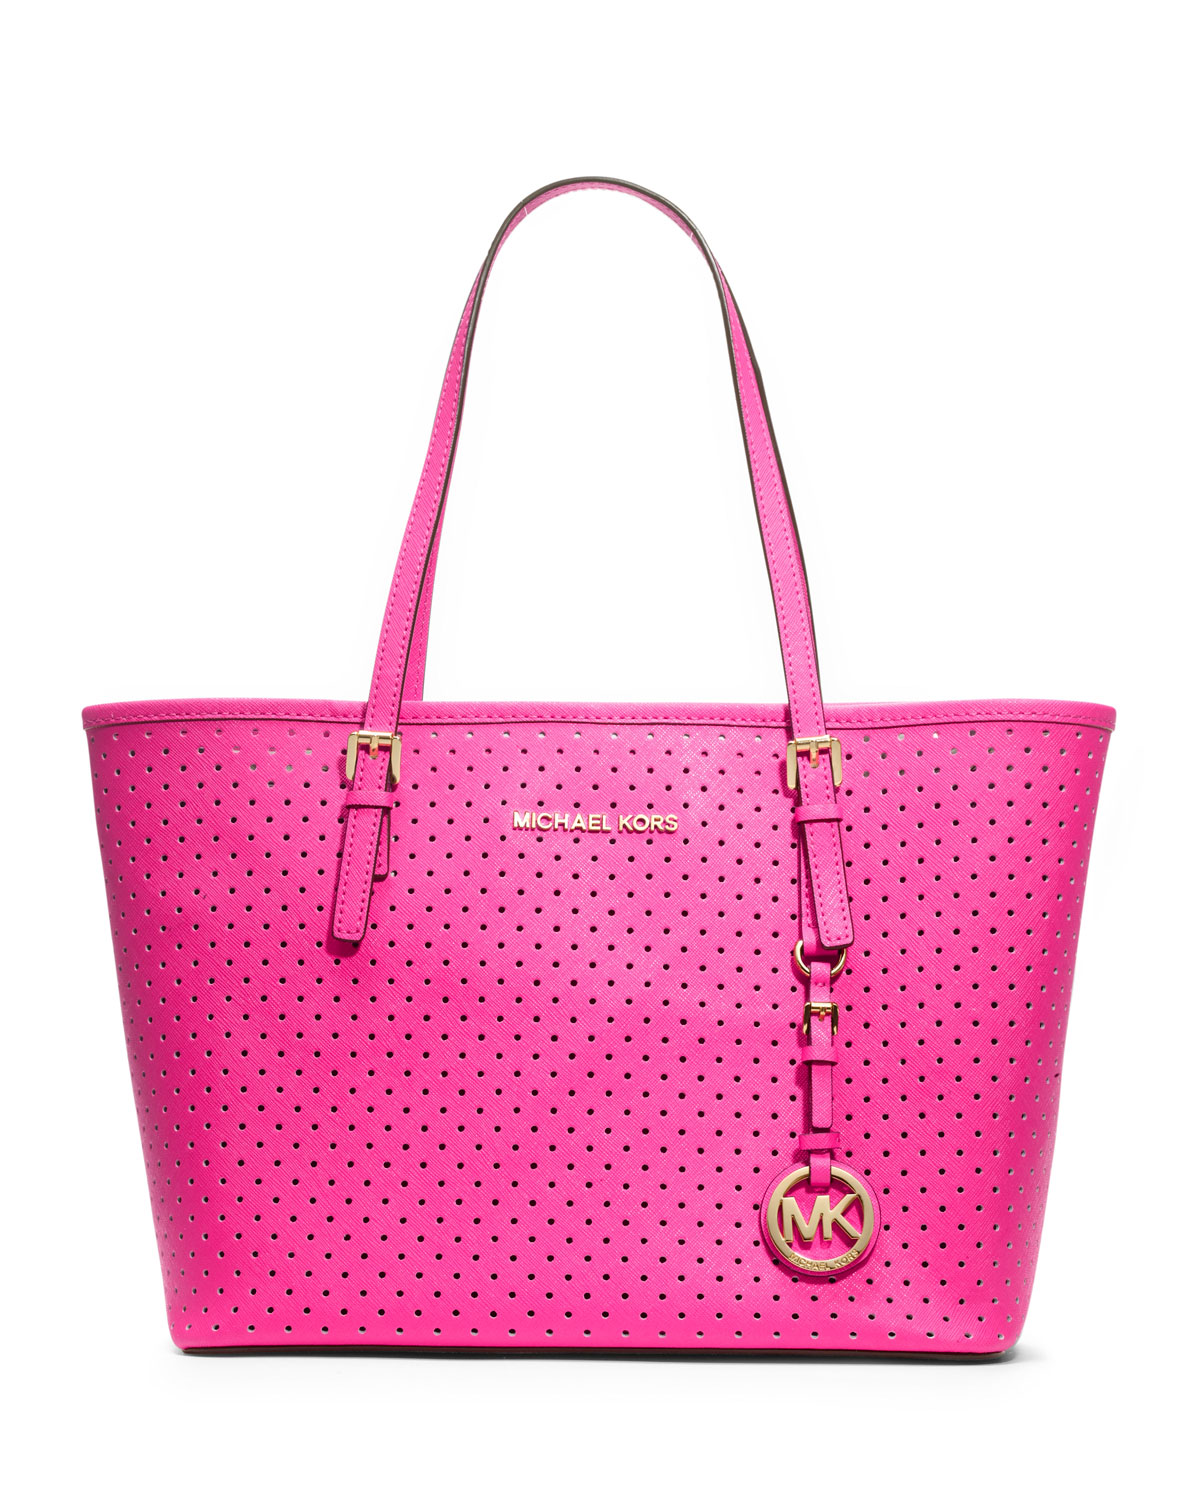 michael kors small jet set perforated travel tote in pink jet lyst. Black Bedroom Furniture Sets. Home Design Ideas